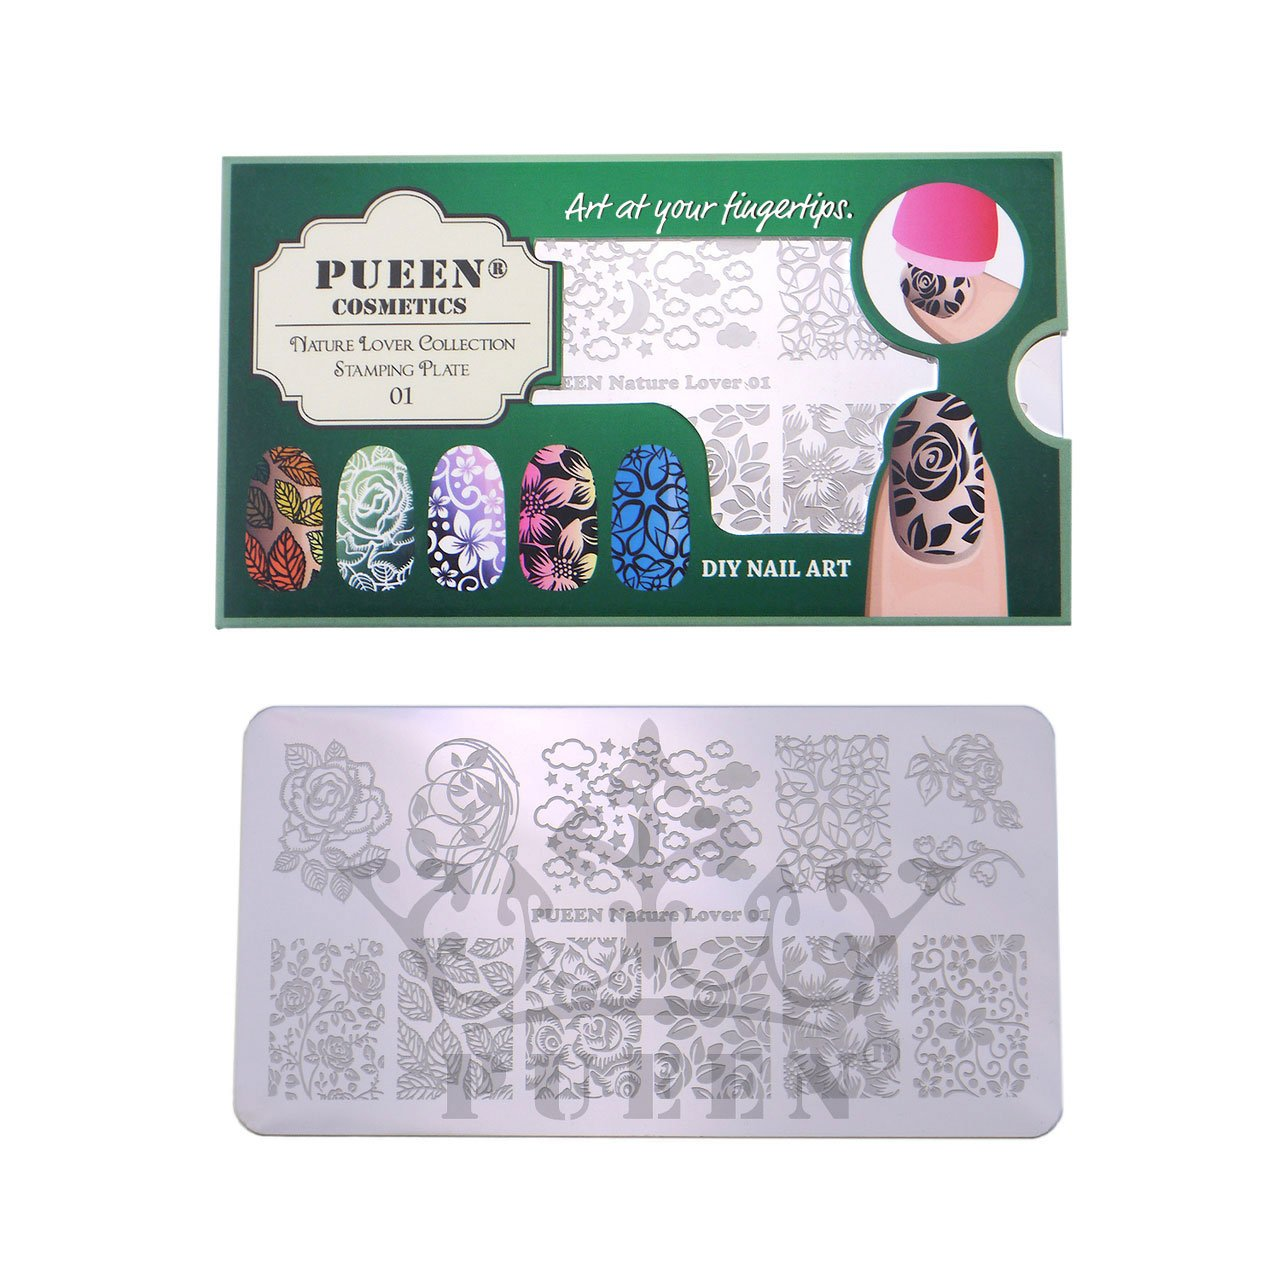 PUEEN Nail Art Stamping Plate - Nature Lover 01-125x65mm Unique Nailart Polish Stamping Manicure Image Plates Accessories Kit-BH000558